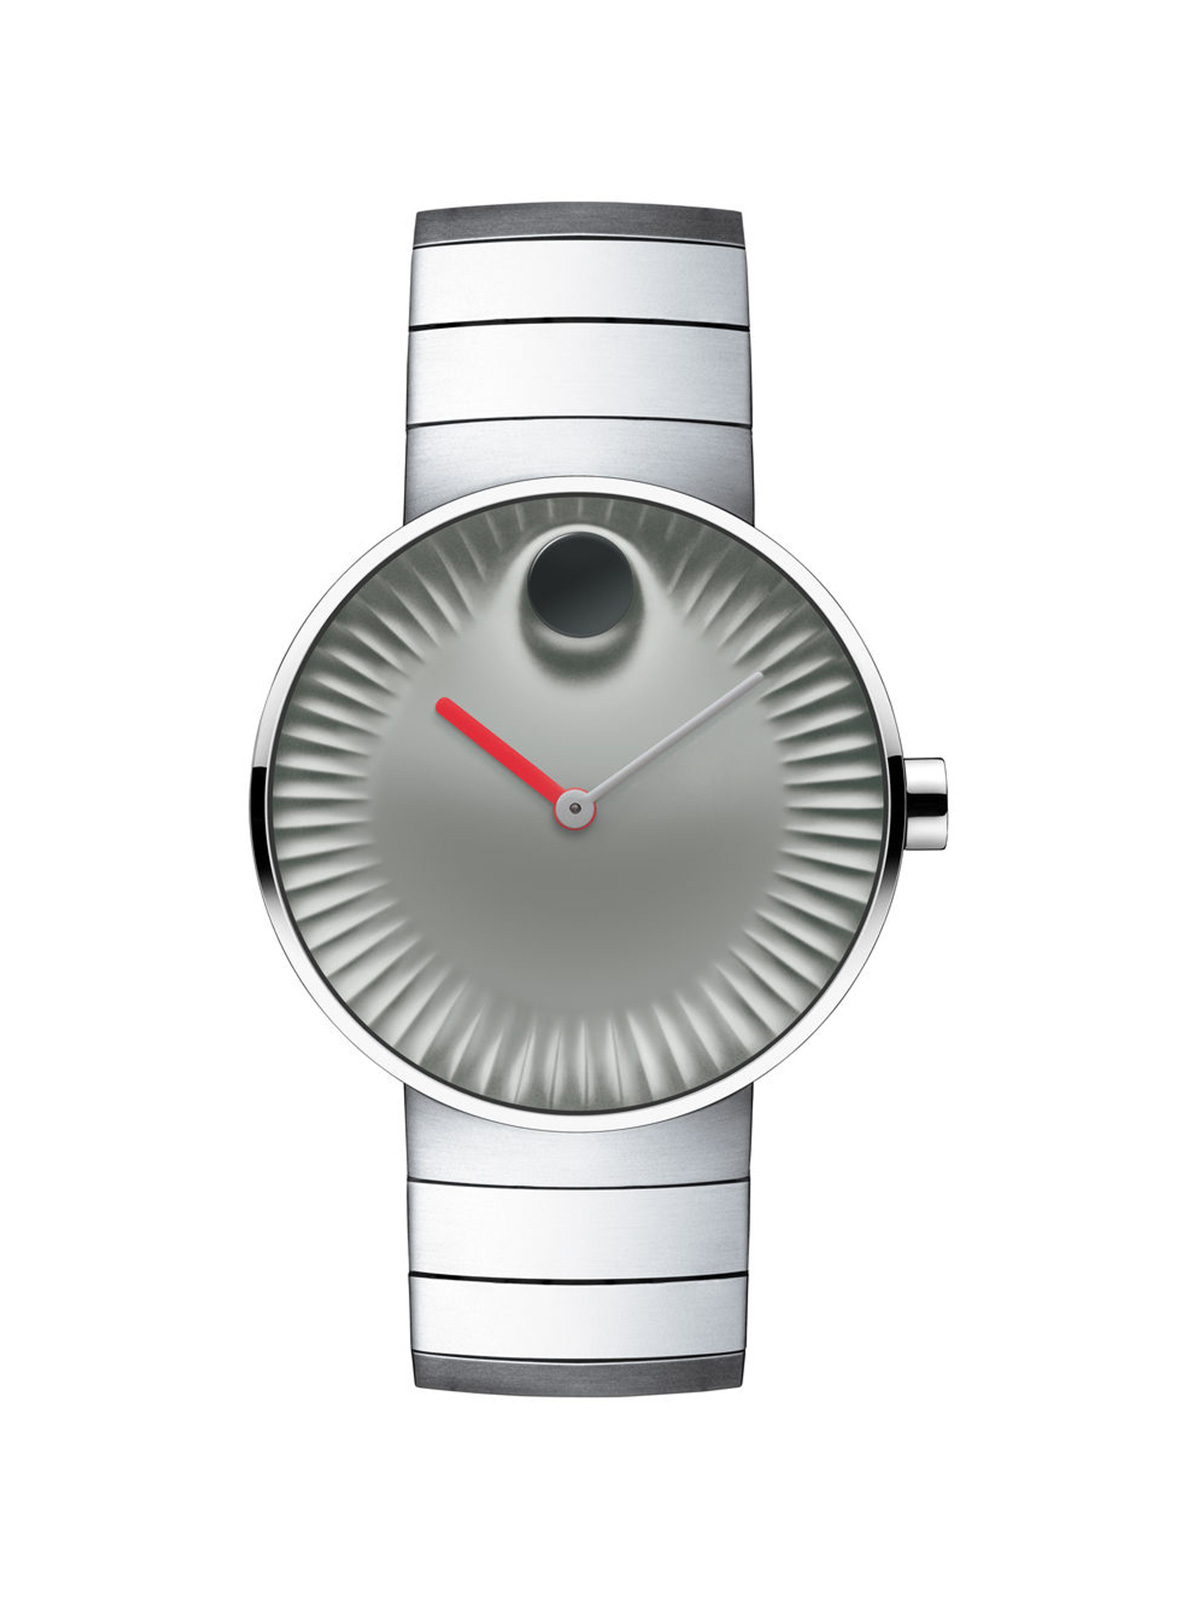 MOVADO EDGE GREY STAINLESS STEEL MEN'S WATCH